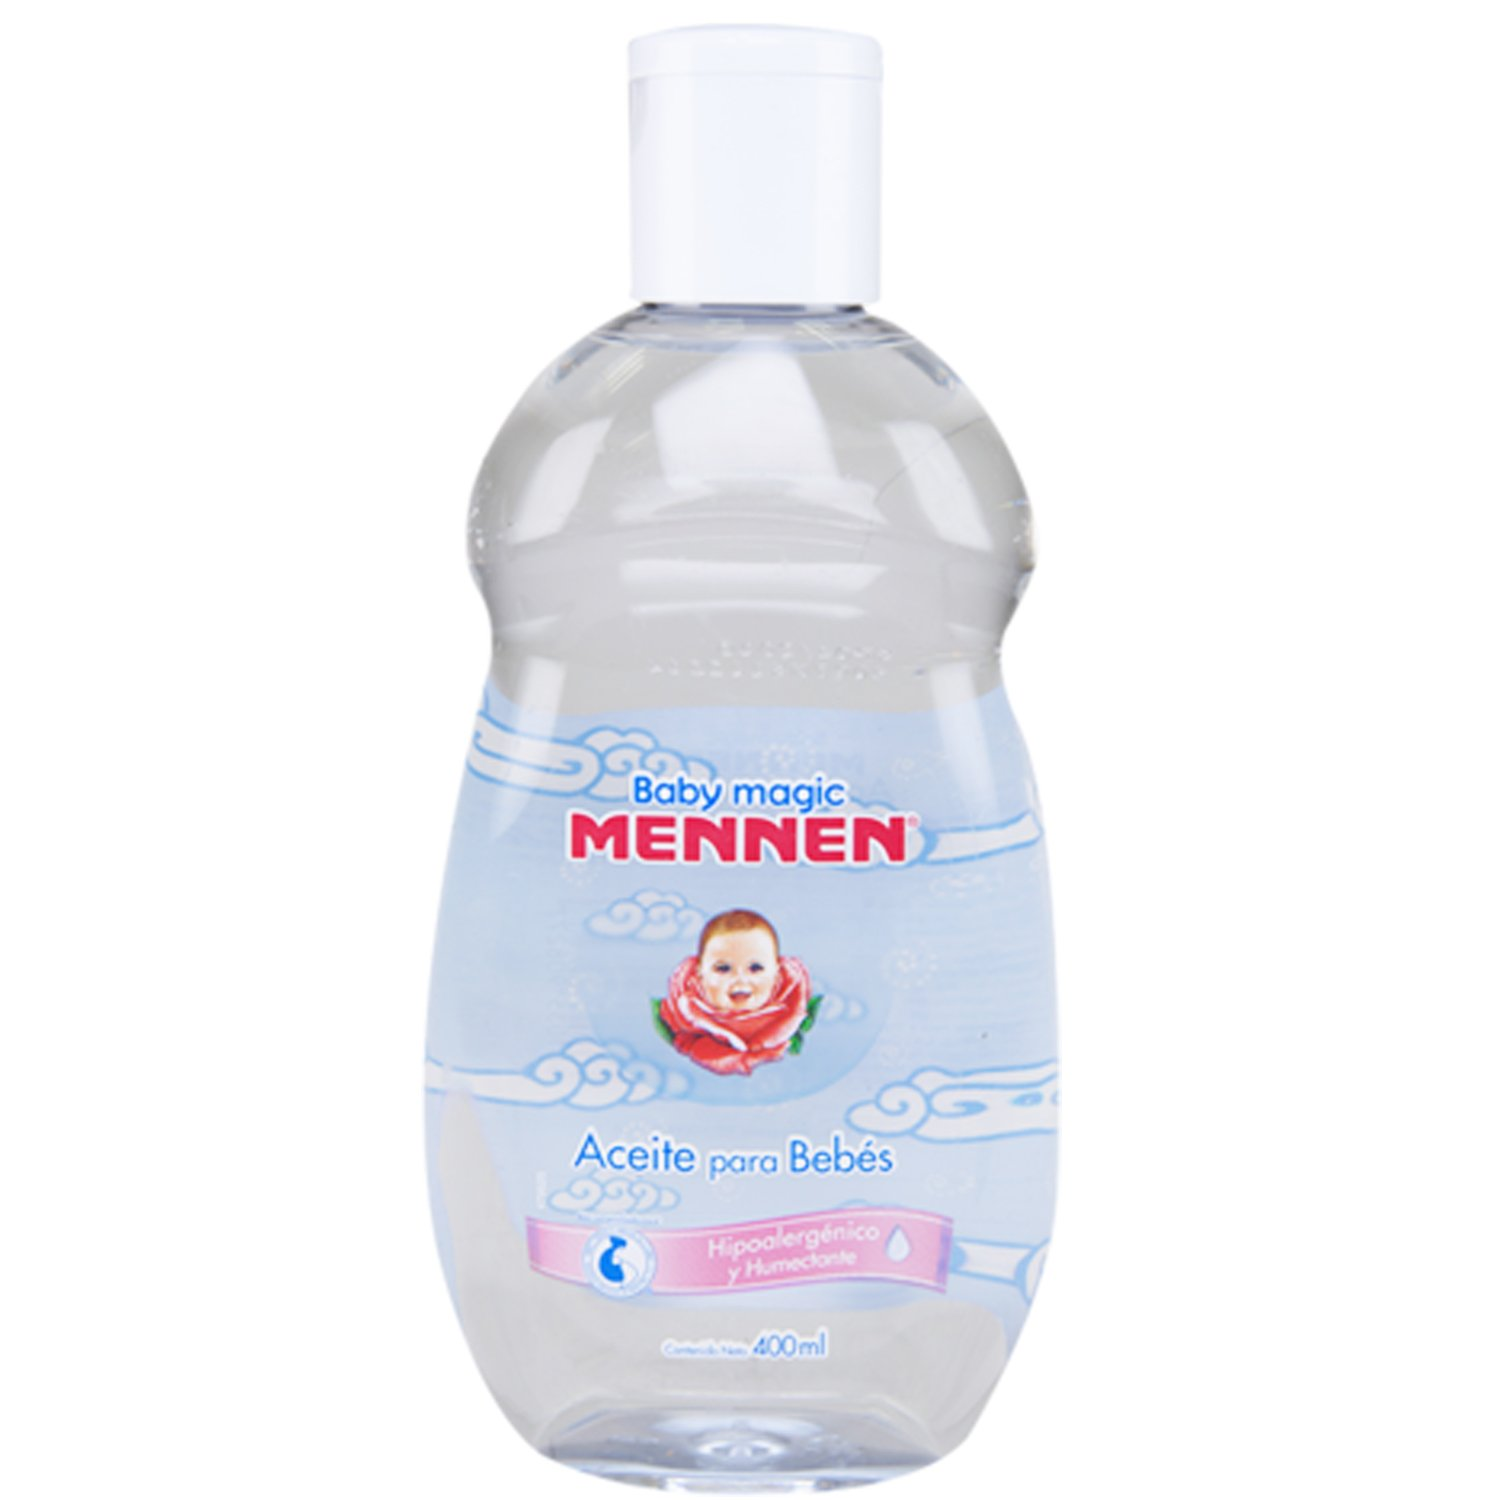 Amazon.com: Mennen Baby Magic Aceite Para Bebes 200ml: Health & Personal Care